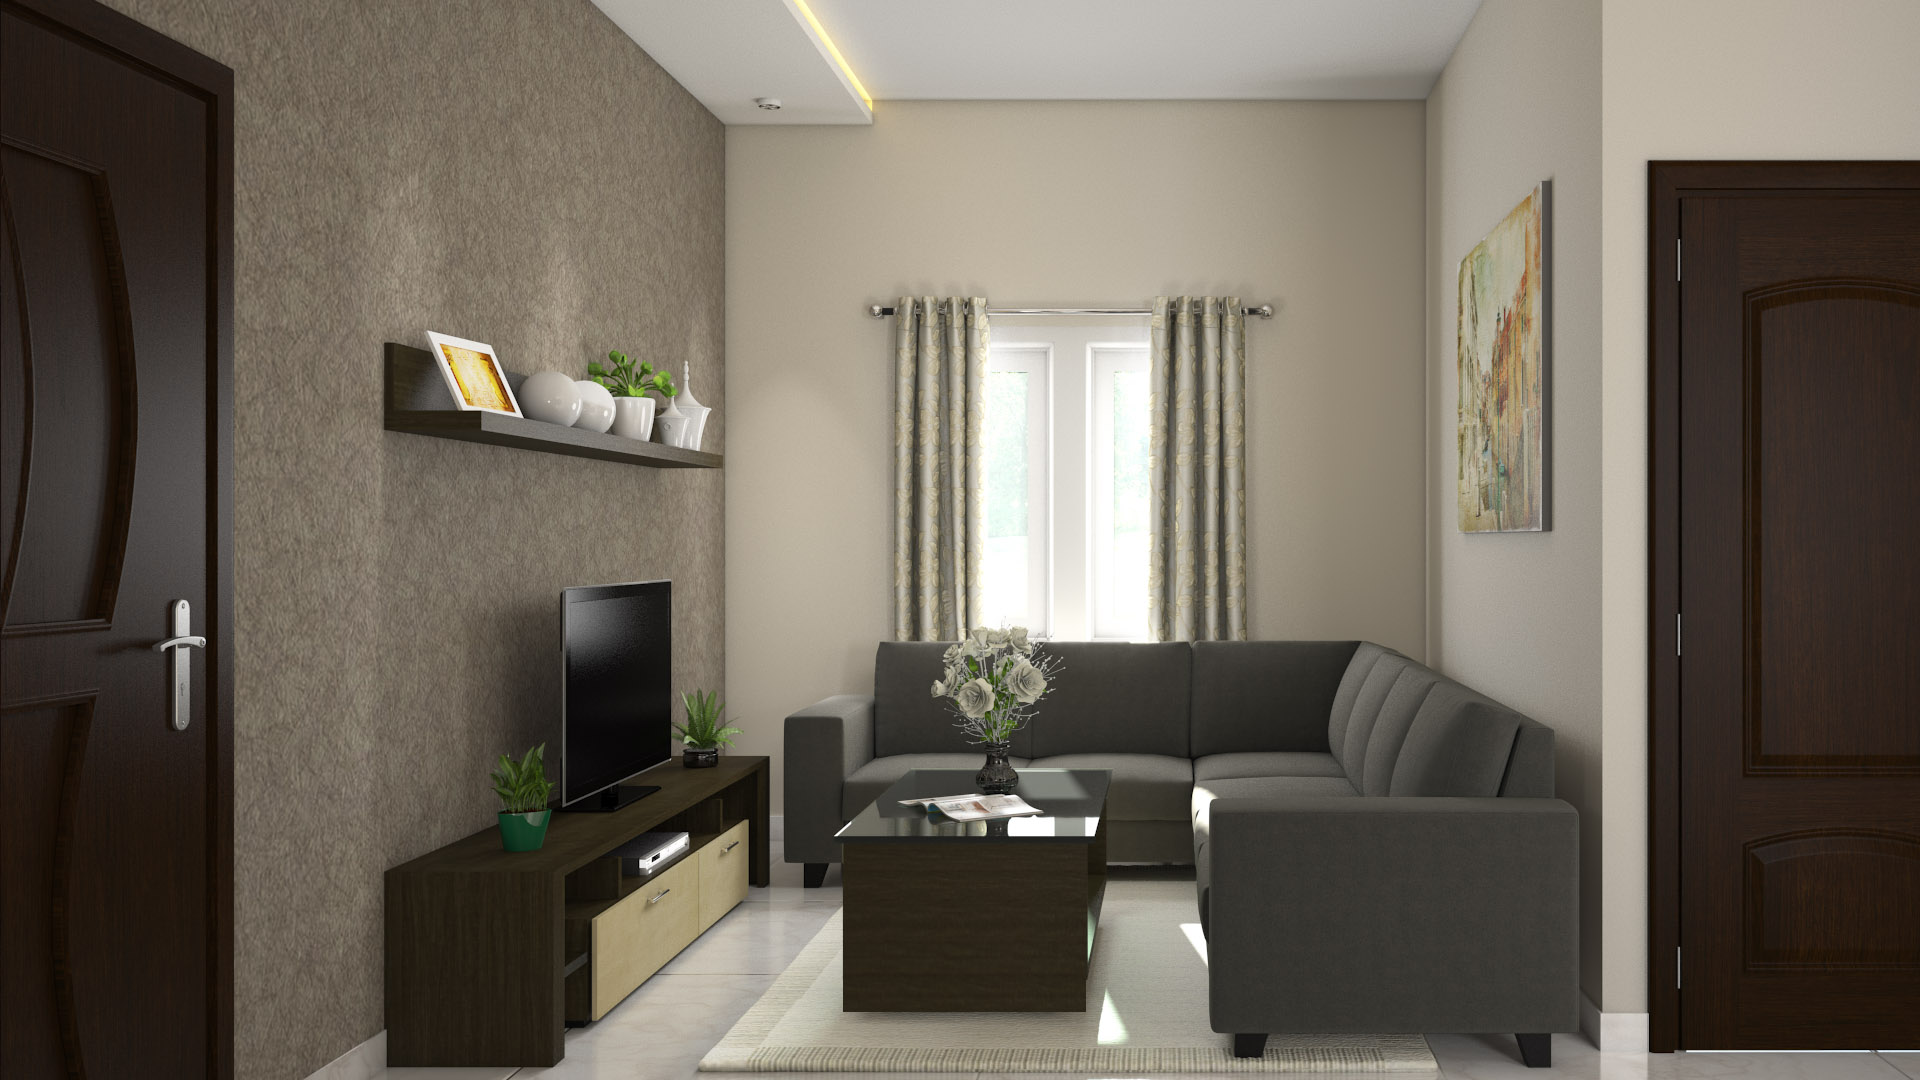 Latest modern furniture interior designs Flat interior design images